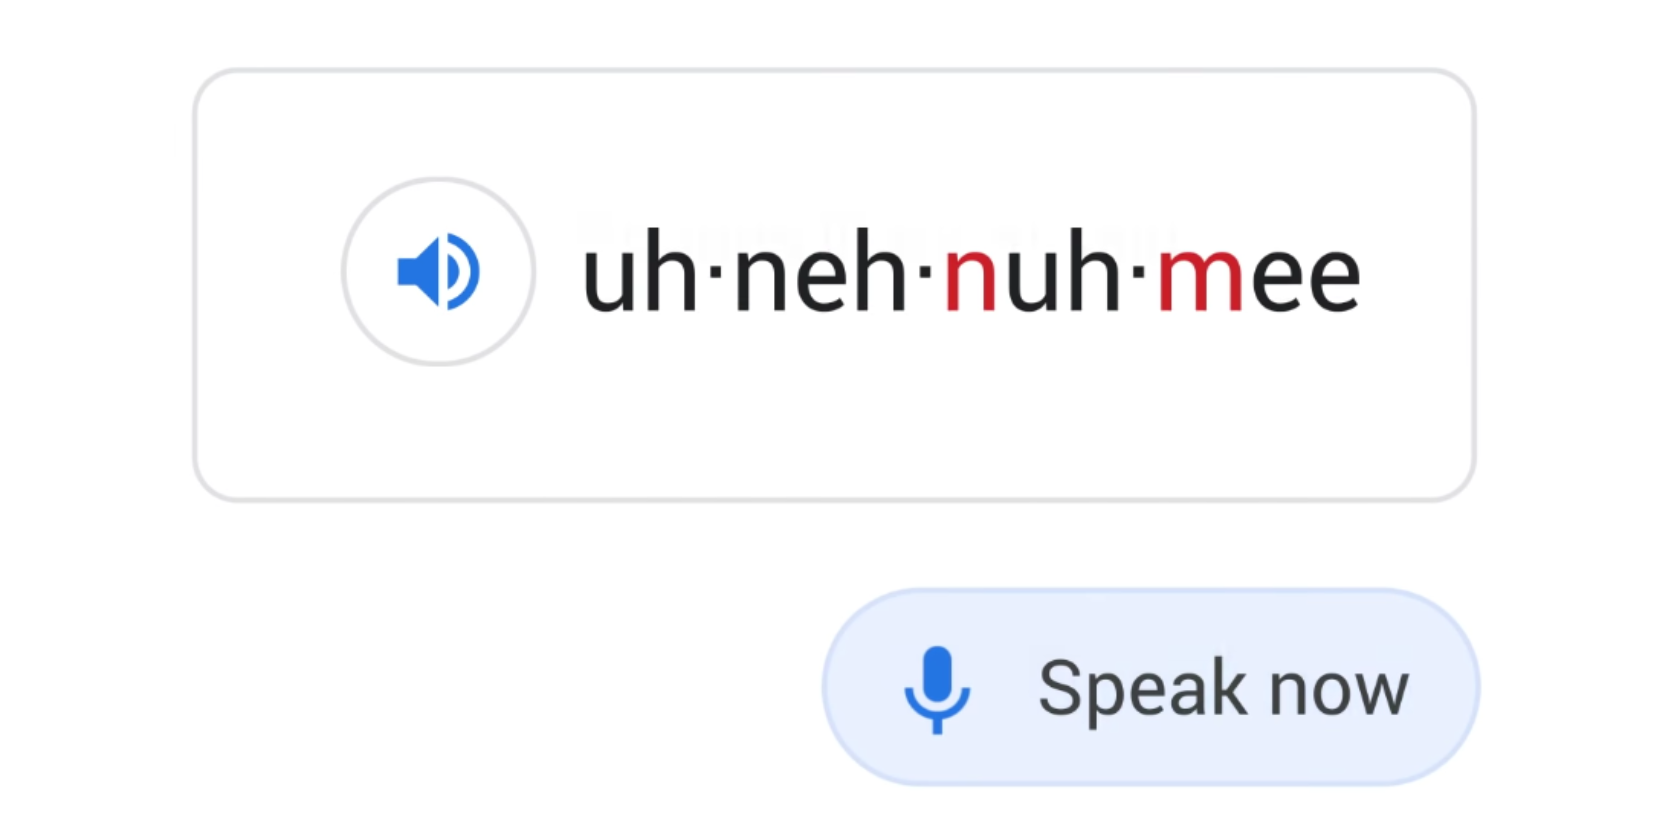 Google Will Now Help You Pronounce Words Words, New